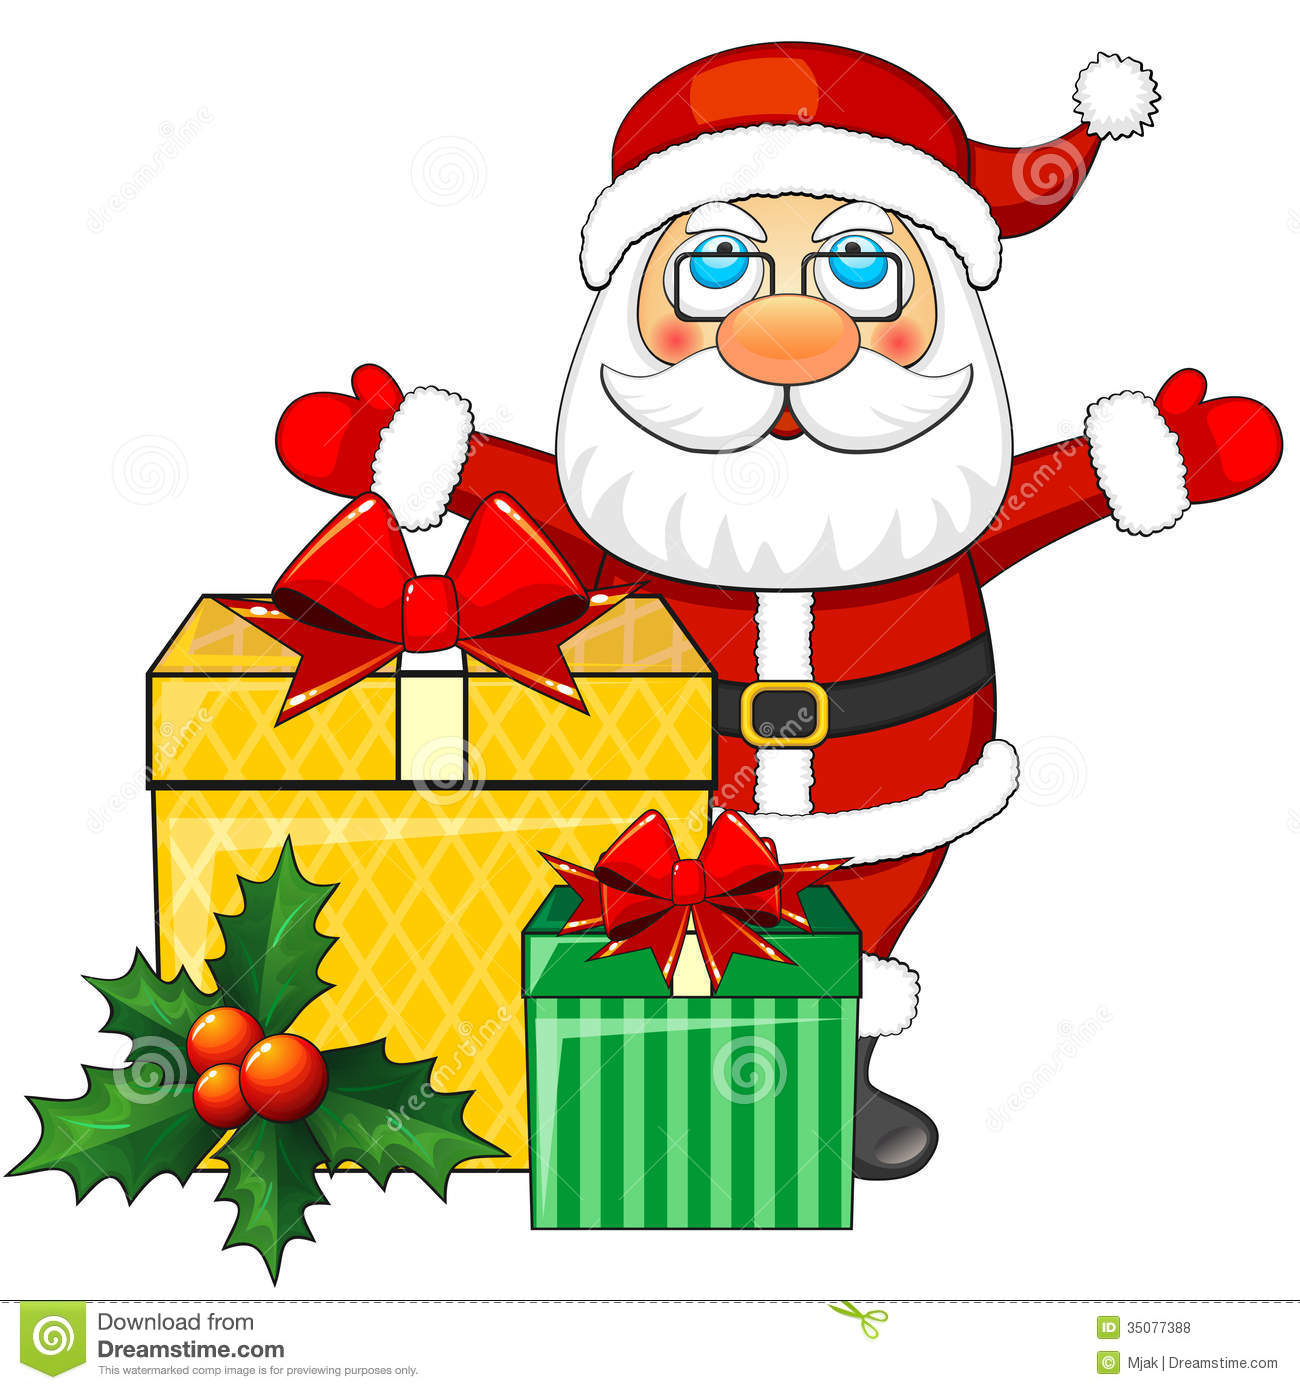 Christmas Toys Cartoon : Santa claus and christmas gifts royalty free stock photos